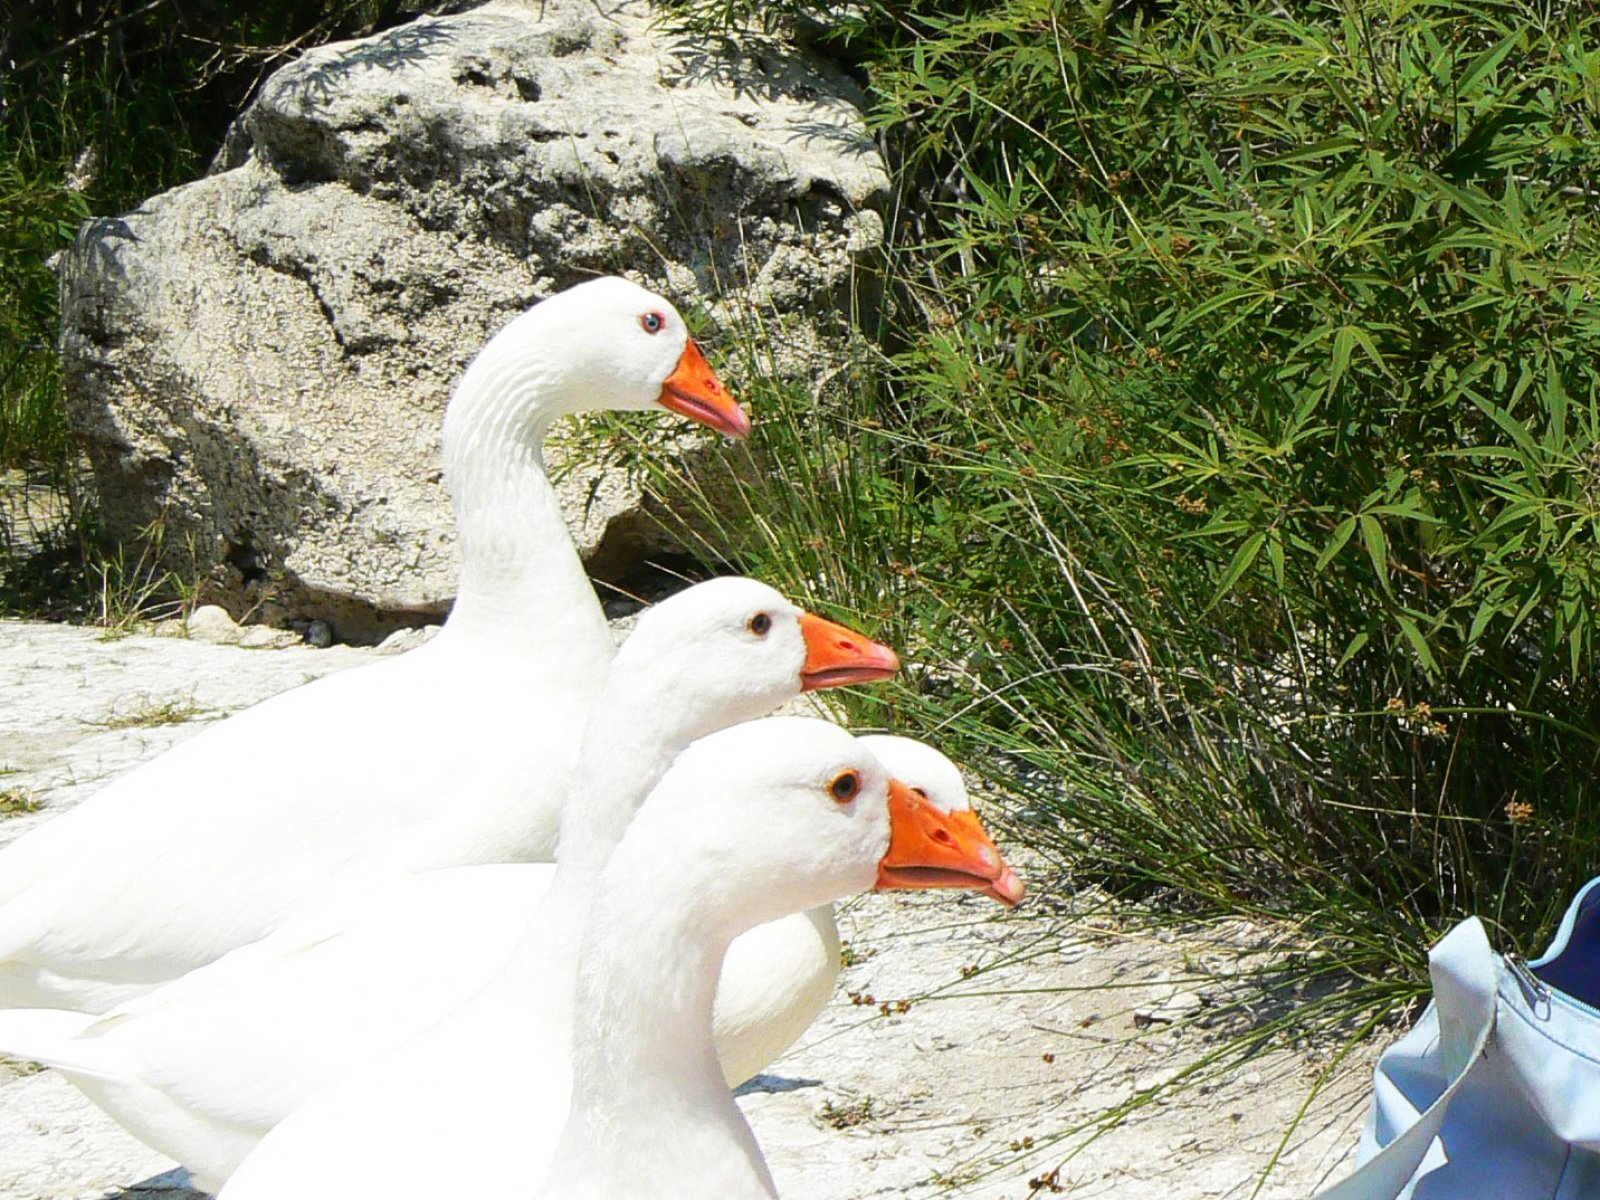 How to feed the wild geese and ducks near the lake Kournas on Crete